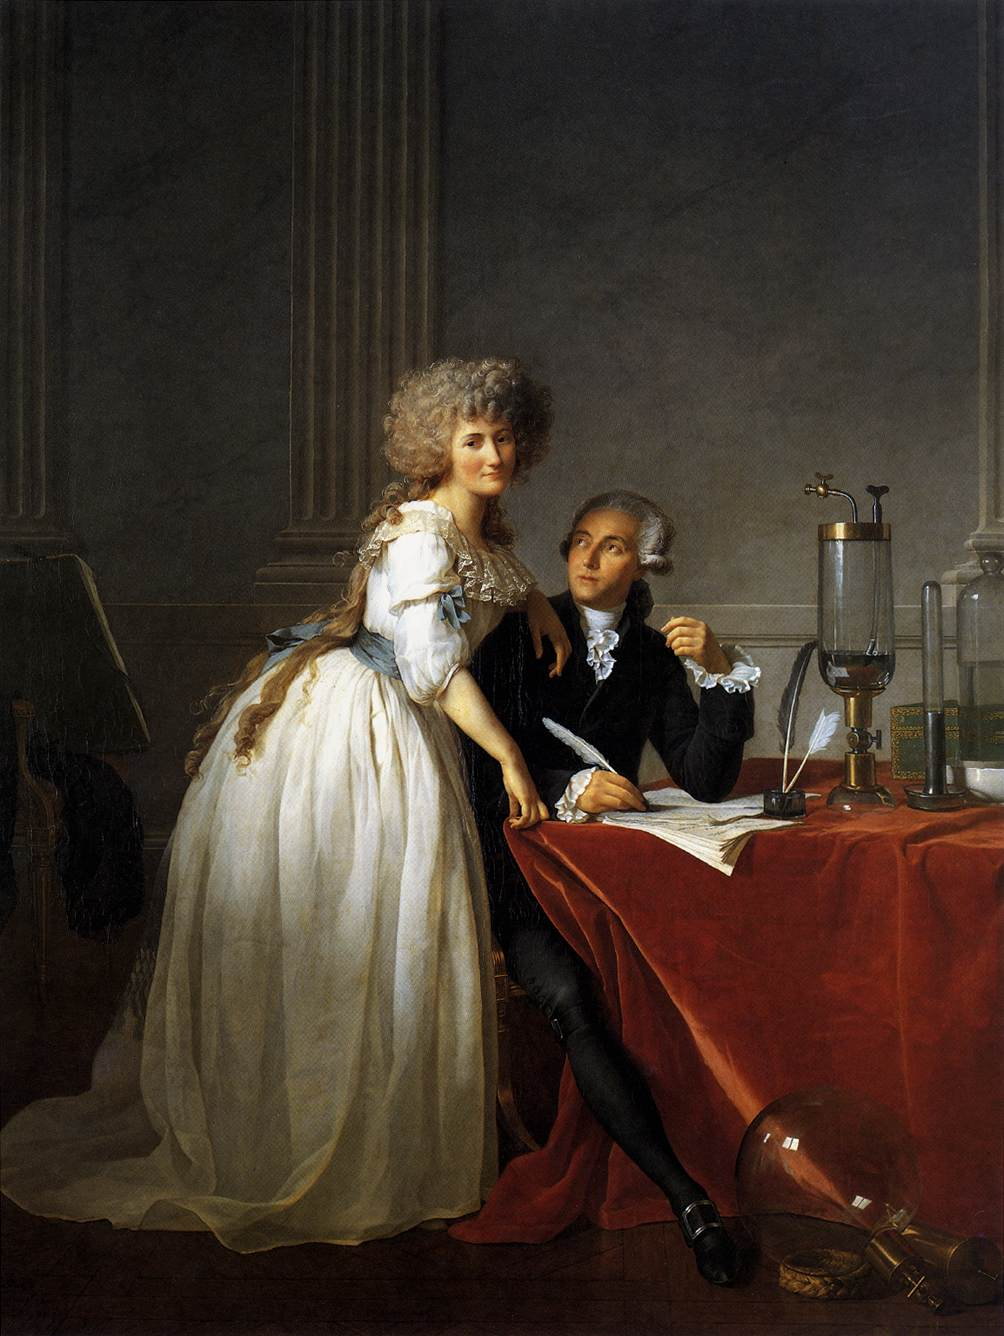 1788 Portrait of Antoine-Laurent and Marie-Anne Lavoisier by Jacques-Louis David